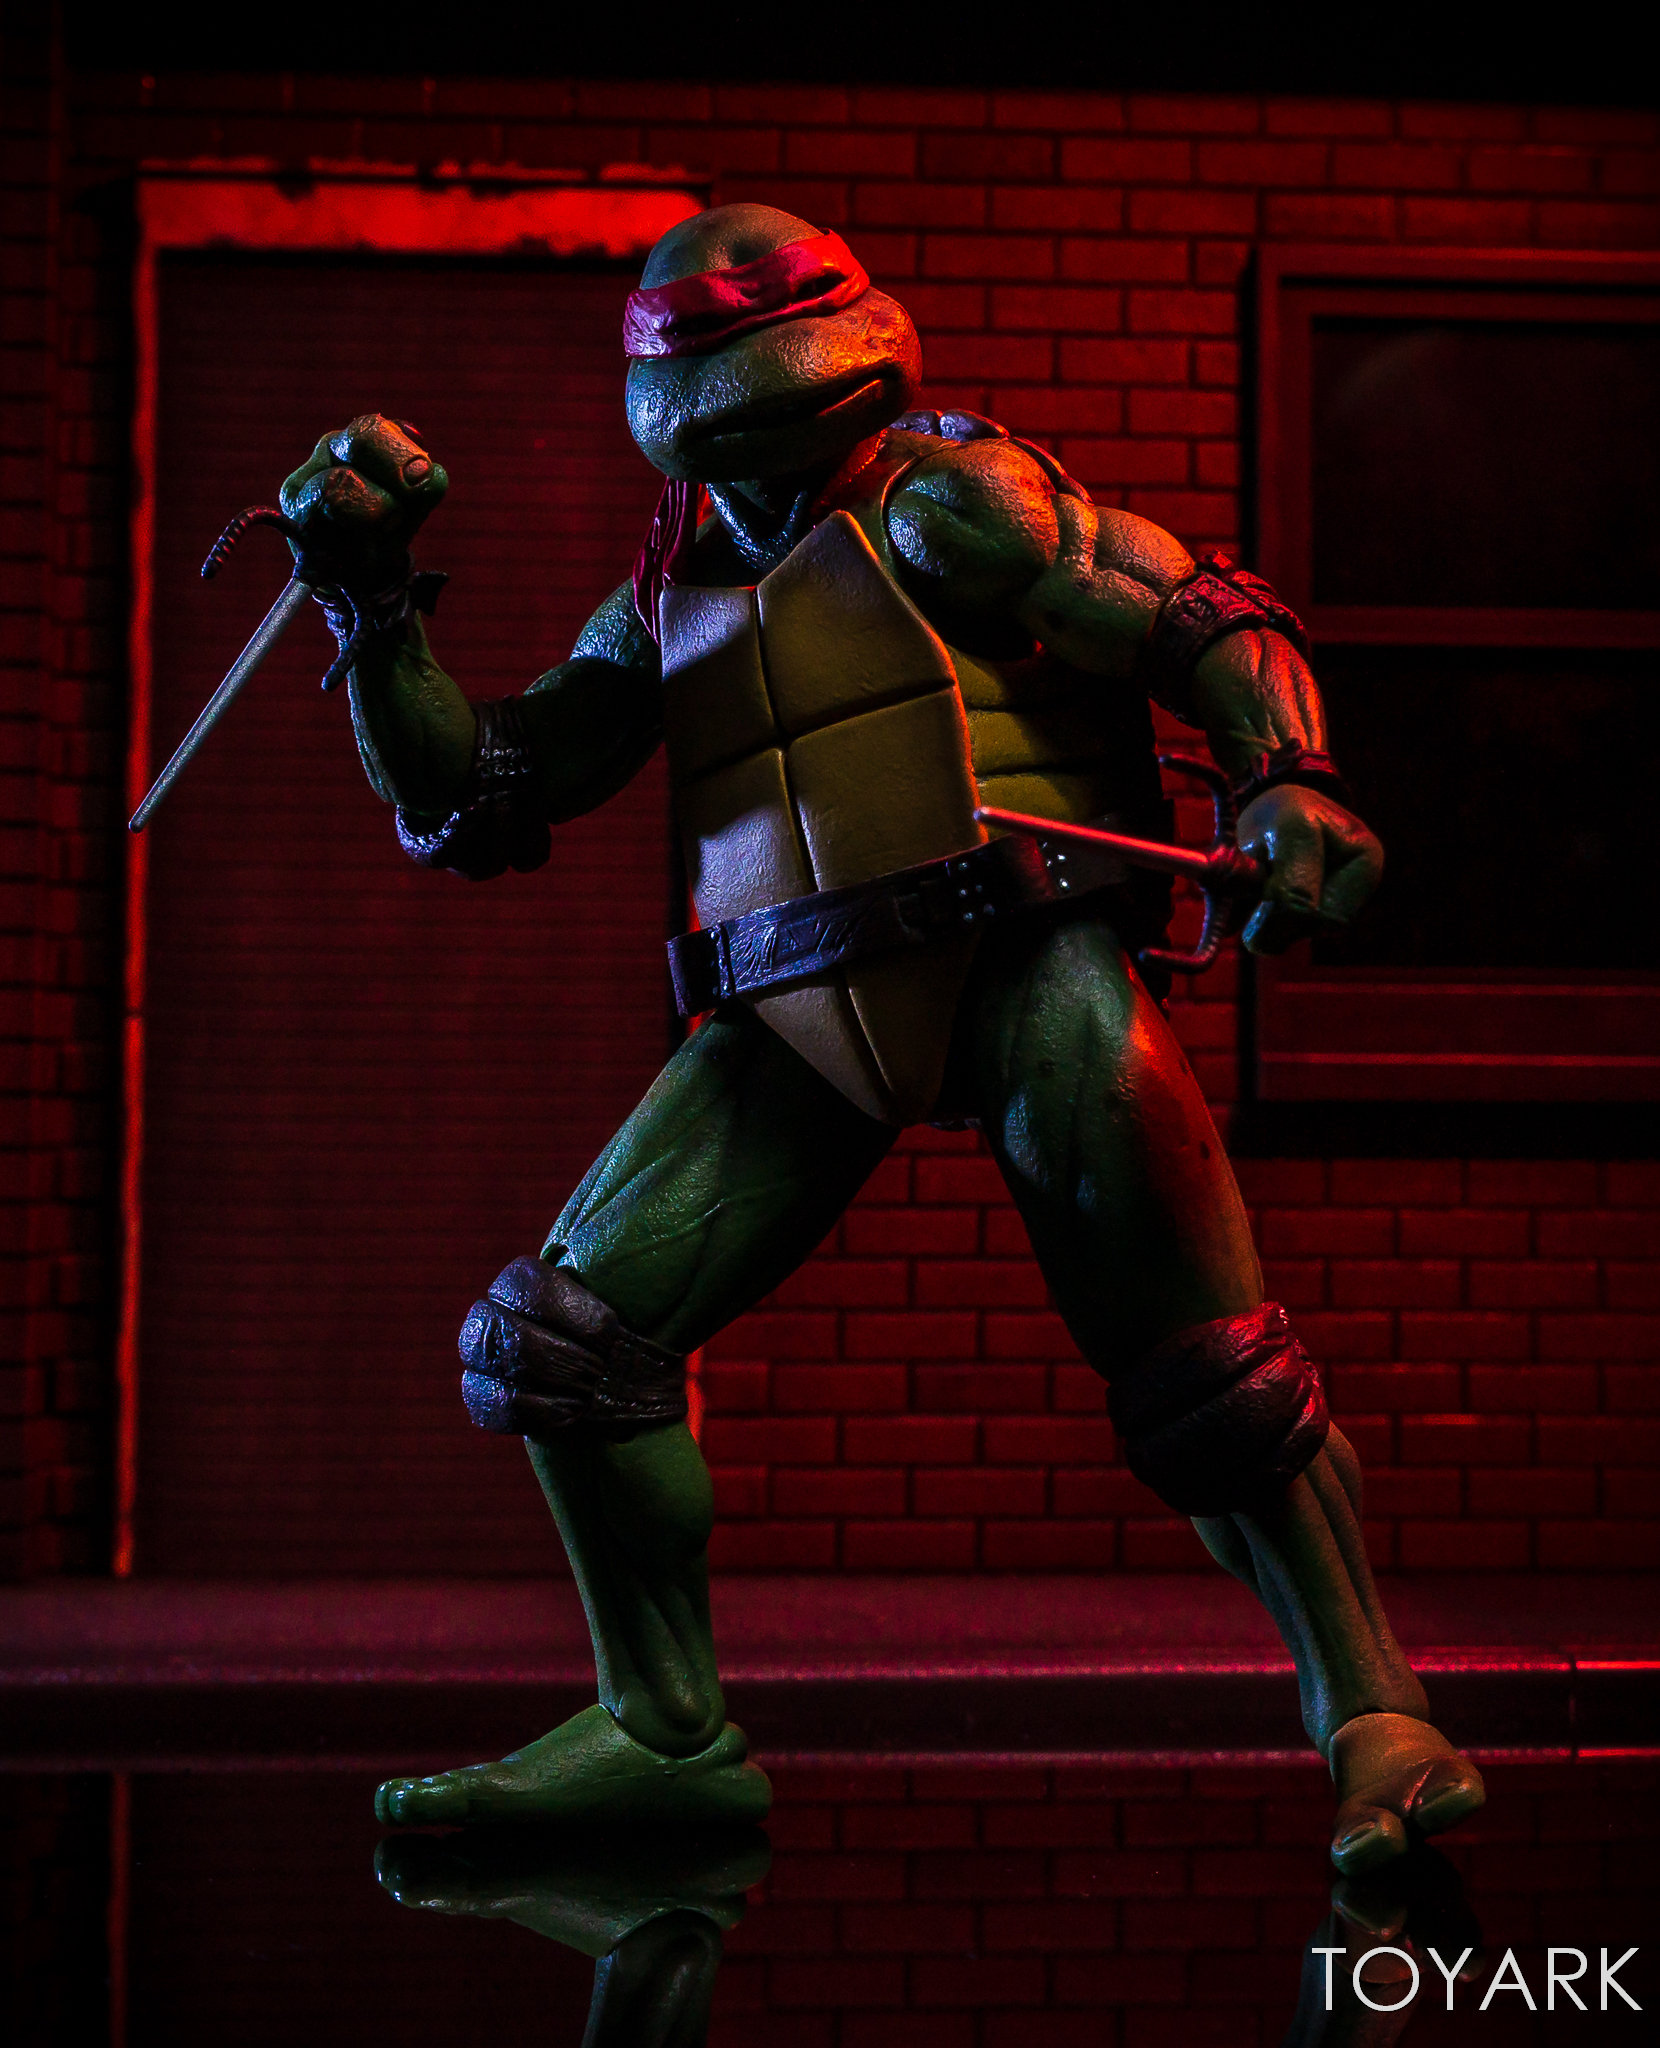 https://news.toyark.com/wp-content/uploads/sites/4/2018/07/NECA-TMNT-1990-and-Dio-Set-089.jpg